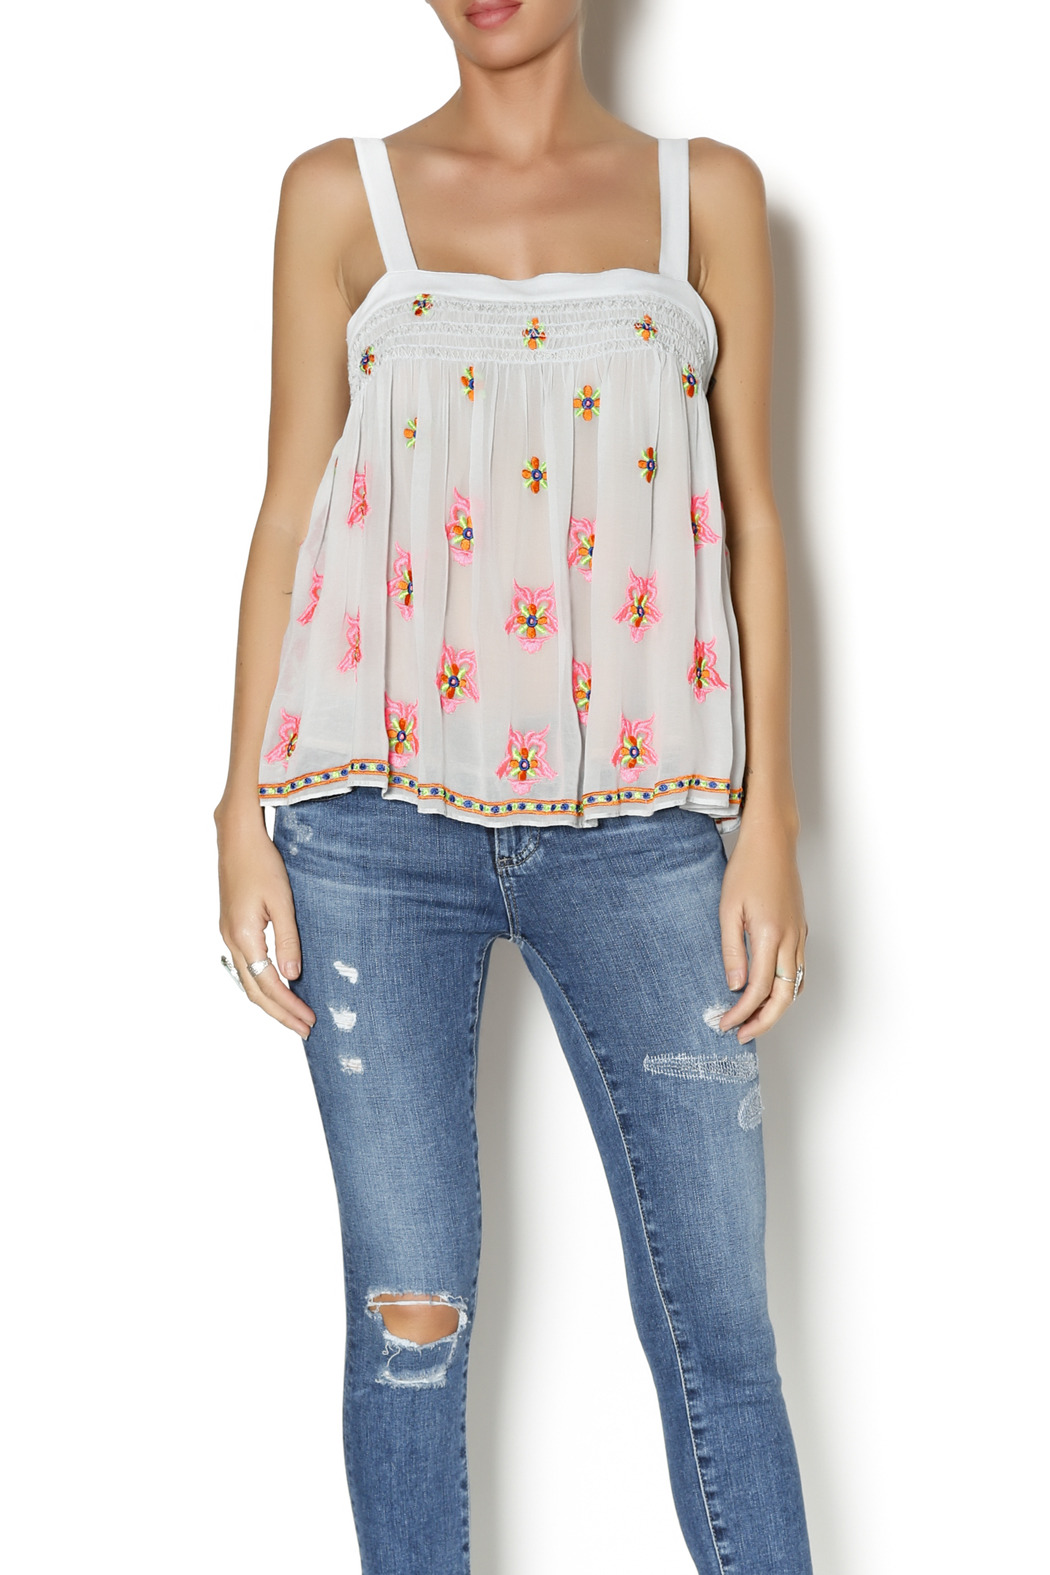 Plenty by Tracy Reese Flirty Tank Top - Front Cropped Image